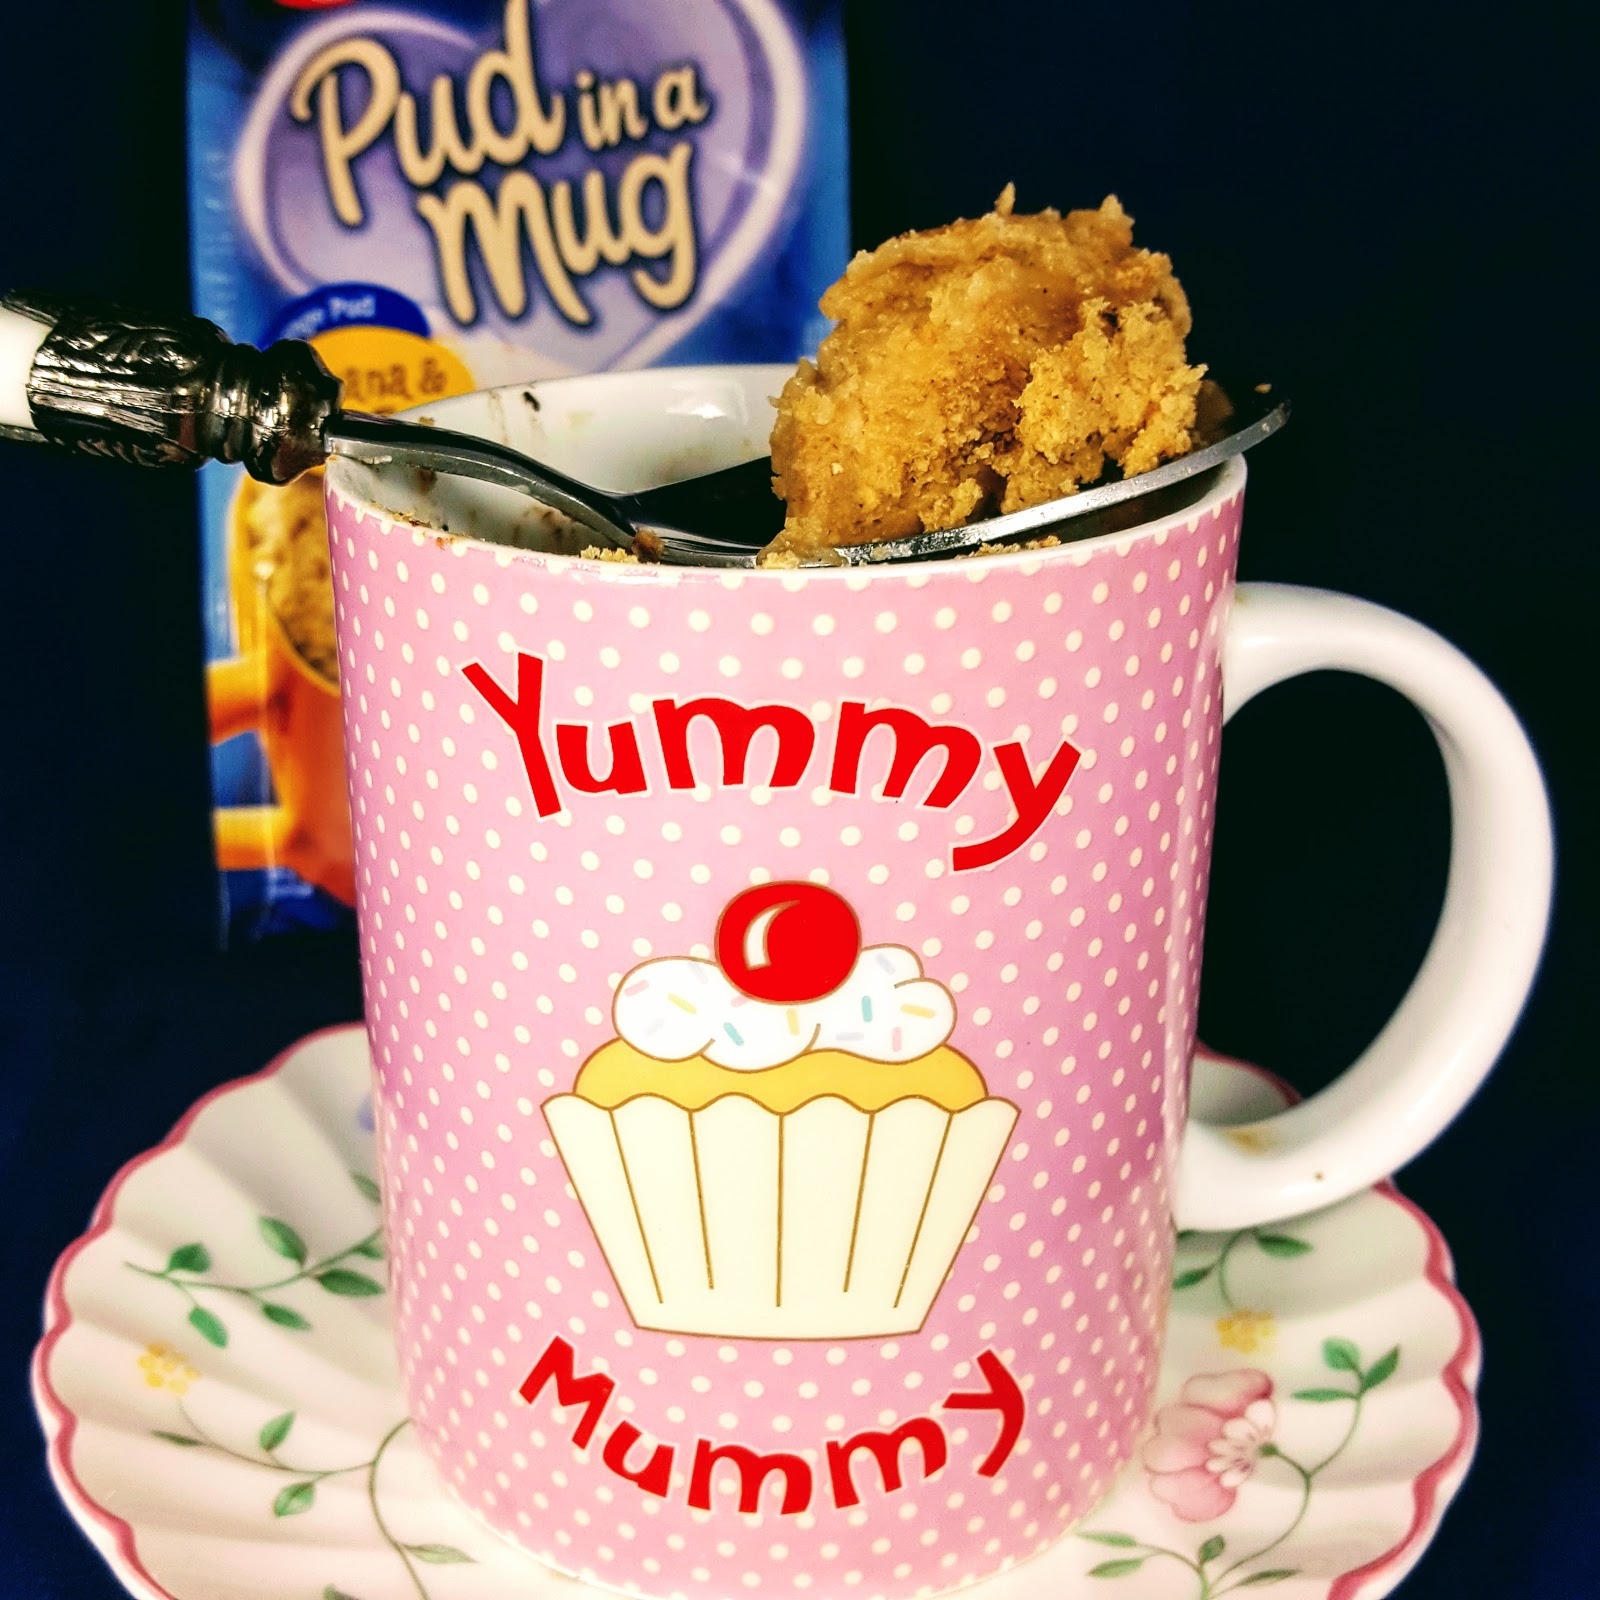 New Dr. Oetker's Pud In A Mug Banana And Choc Chip Review